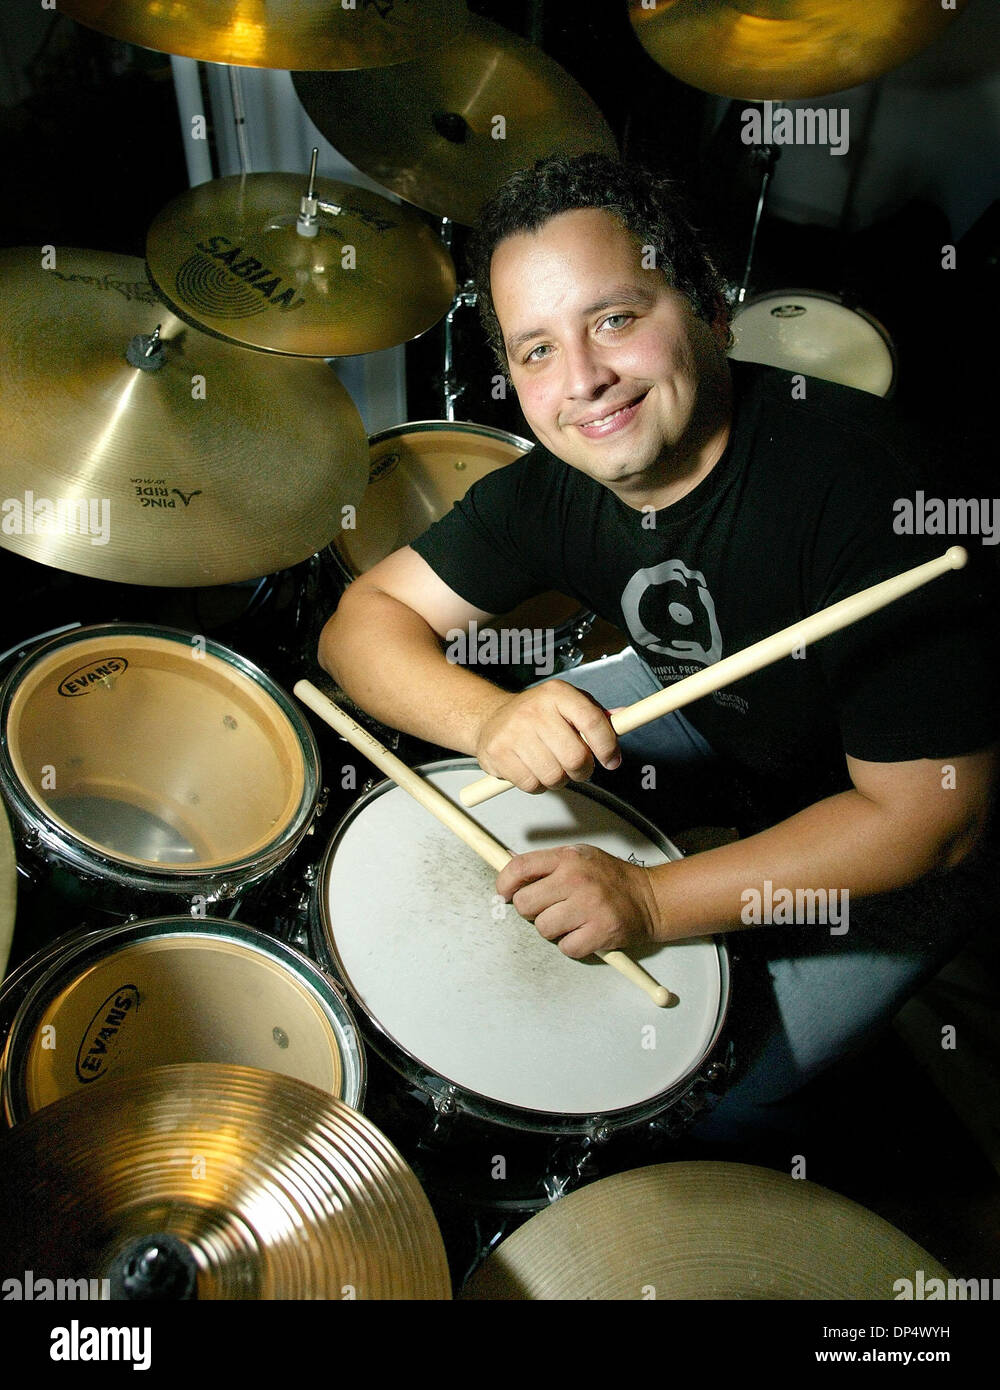 Aug 26, 2006; West Palm Beach, FL, USA; Drummer Angel Luis Lozada, 35, Saturday morning at his West Palm Beach studio. Lozada originally from Toa Baja, Puerto Rico, moved to West Palm Beach in 1993 and is presently the drummer for Doorway 27, a reggae funk rock band.  Mandatory Credit: Photo by Bill Ingram/Palm Beach Post/ZUMA Press. (©) Copyright 2006 by Palm Beach Post - Stock Image